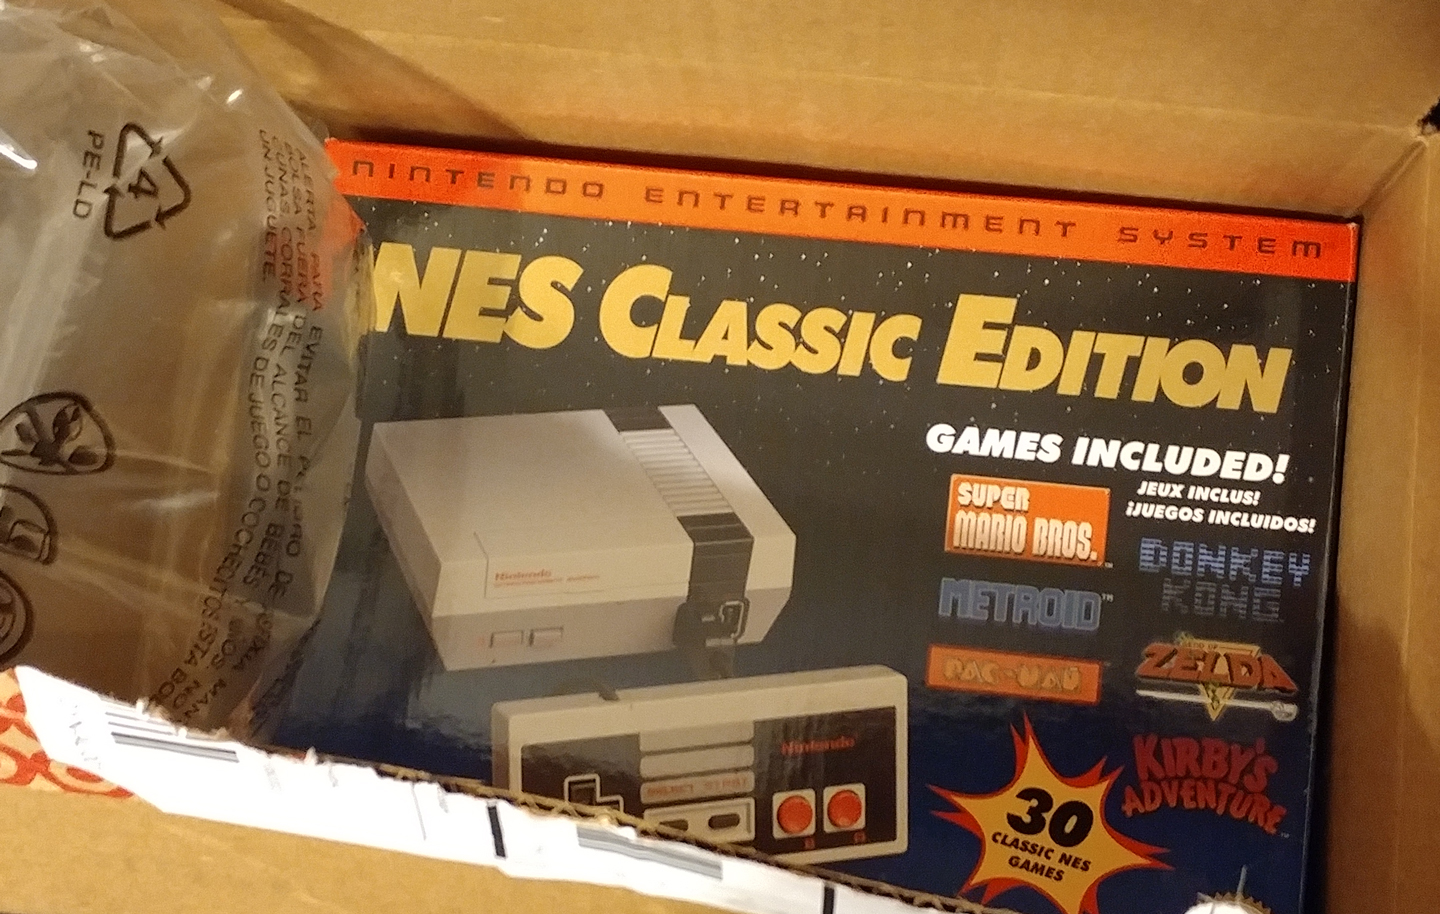 NES Classic Edition HDMI USB 30 games target preorder